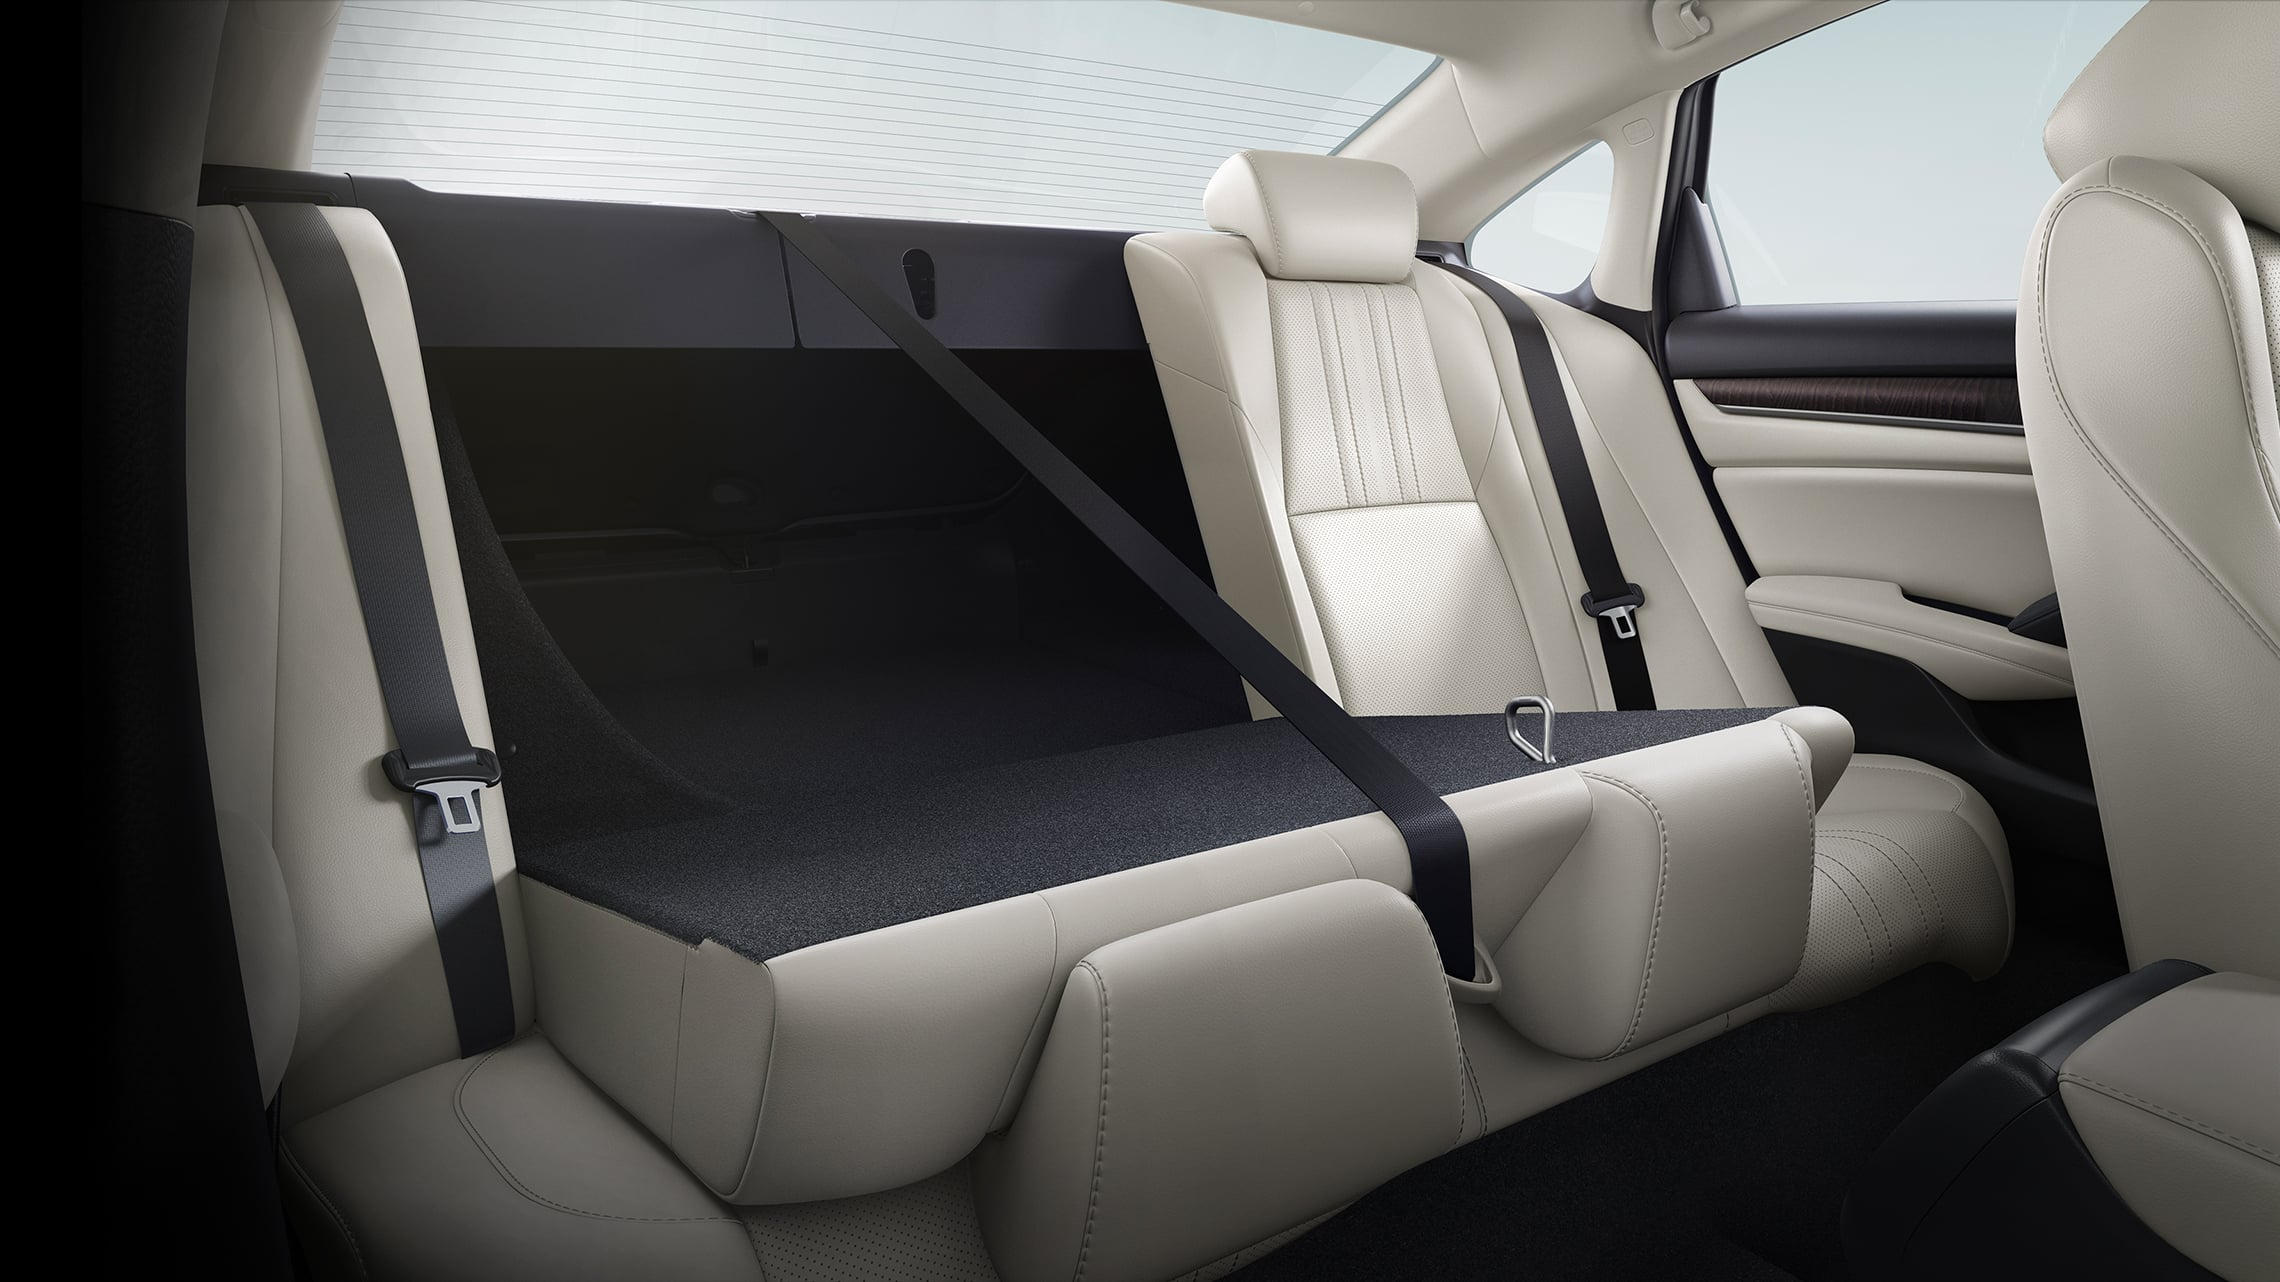 60/40 split fold-down rear seatback detail, shown partly folded down, in the 2021 Honda Accord Touring 2.0T with Ivory Leather.